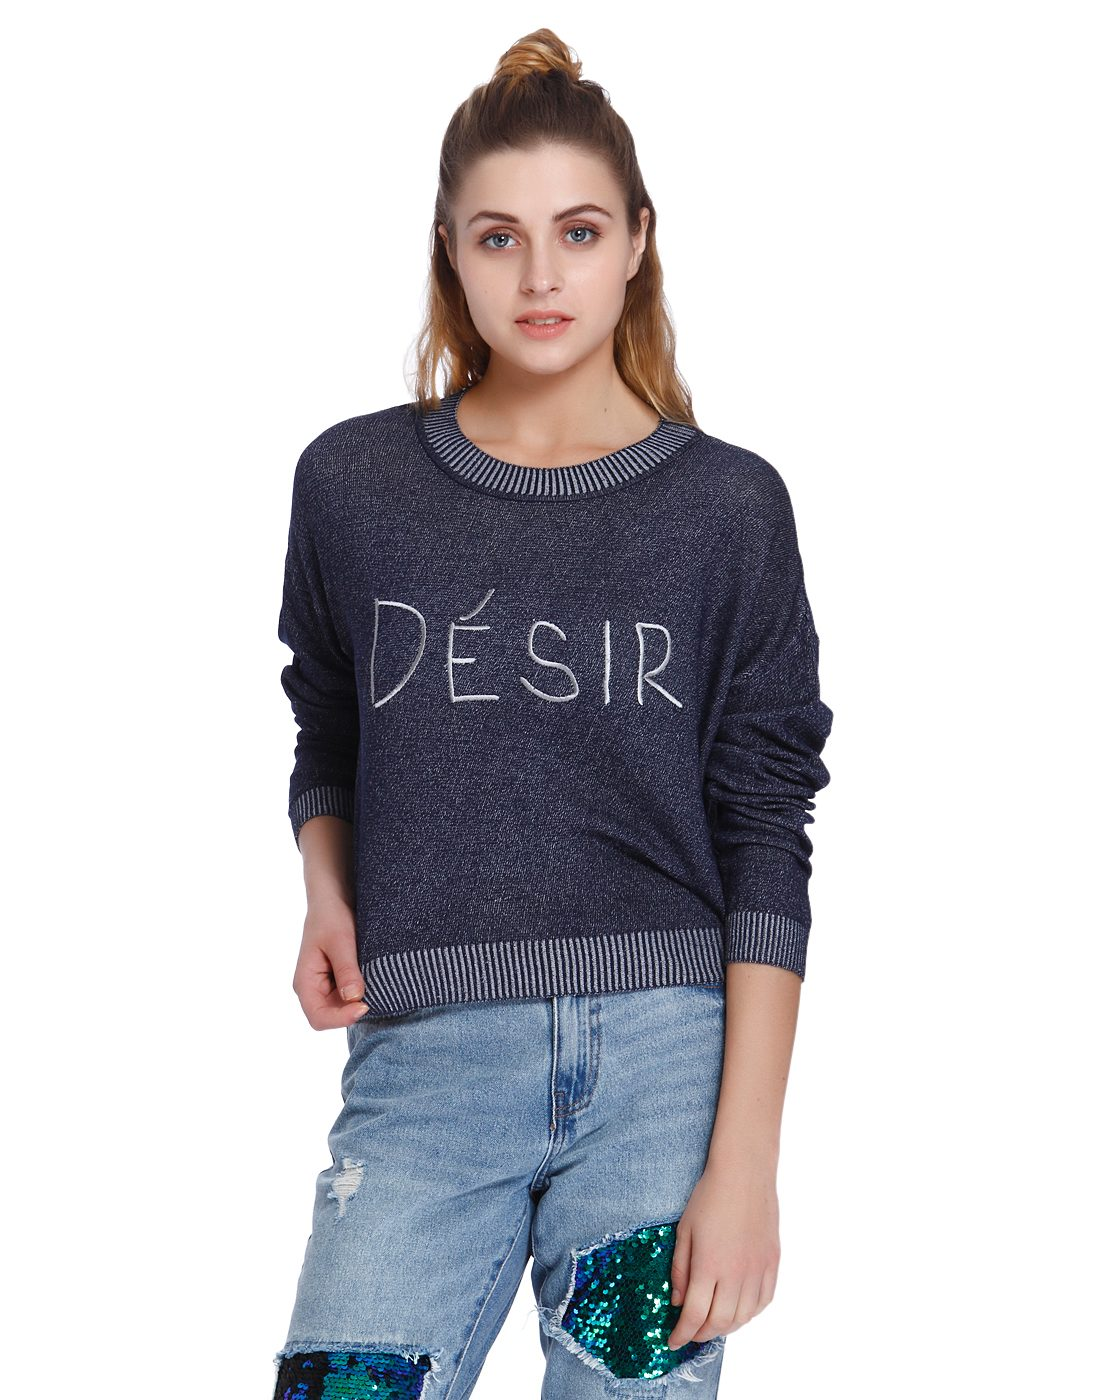 ONLY Sweaters & Pullovers Prices | Buy ONLY Sweaters & Pullovers